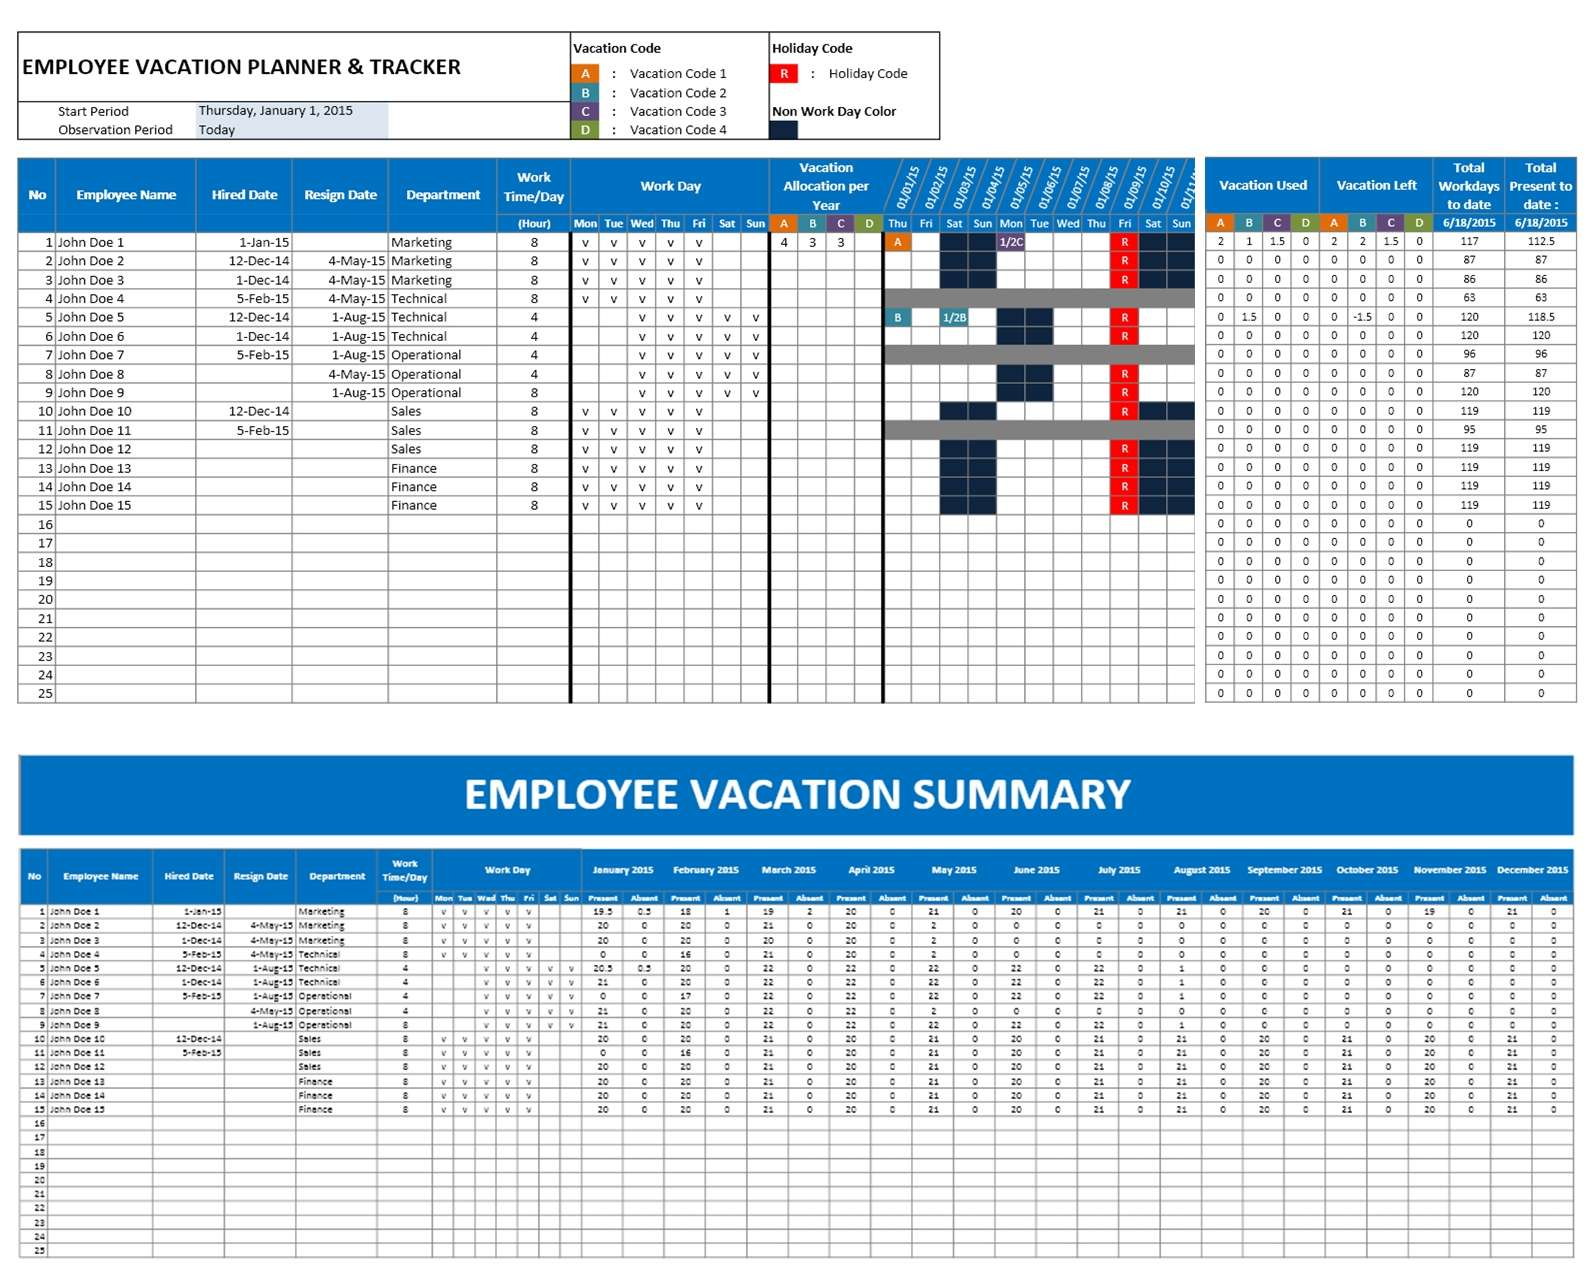 Free Employee Vacation Planner Template Excel Within Employee Vacation Planner Template Excel Download